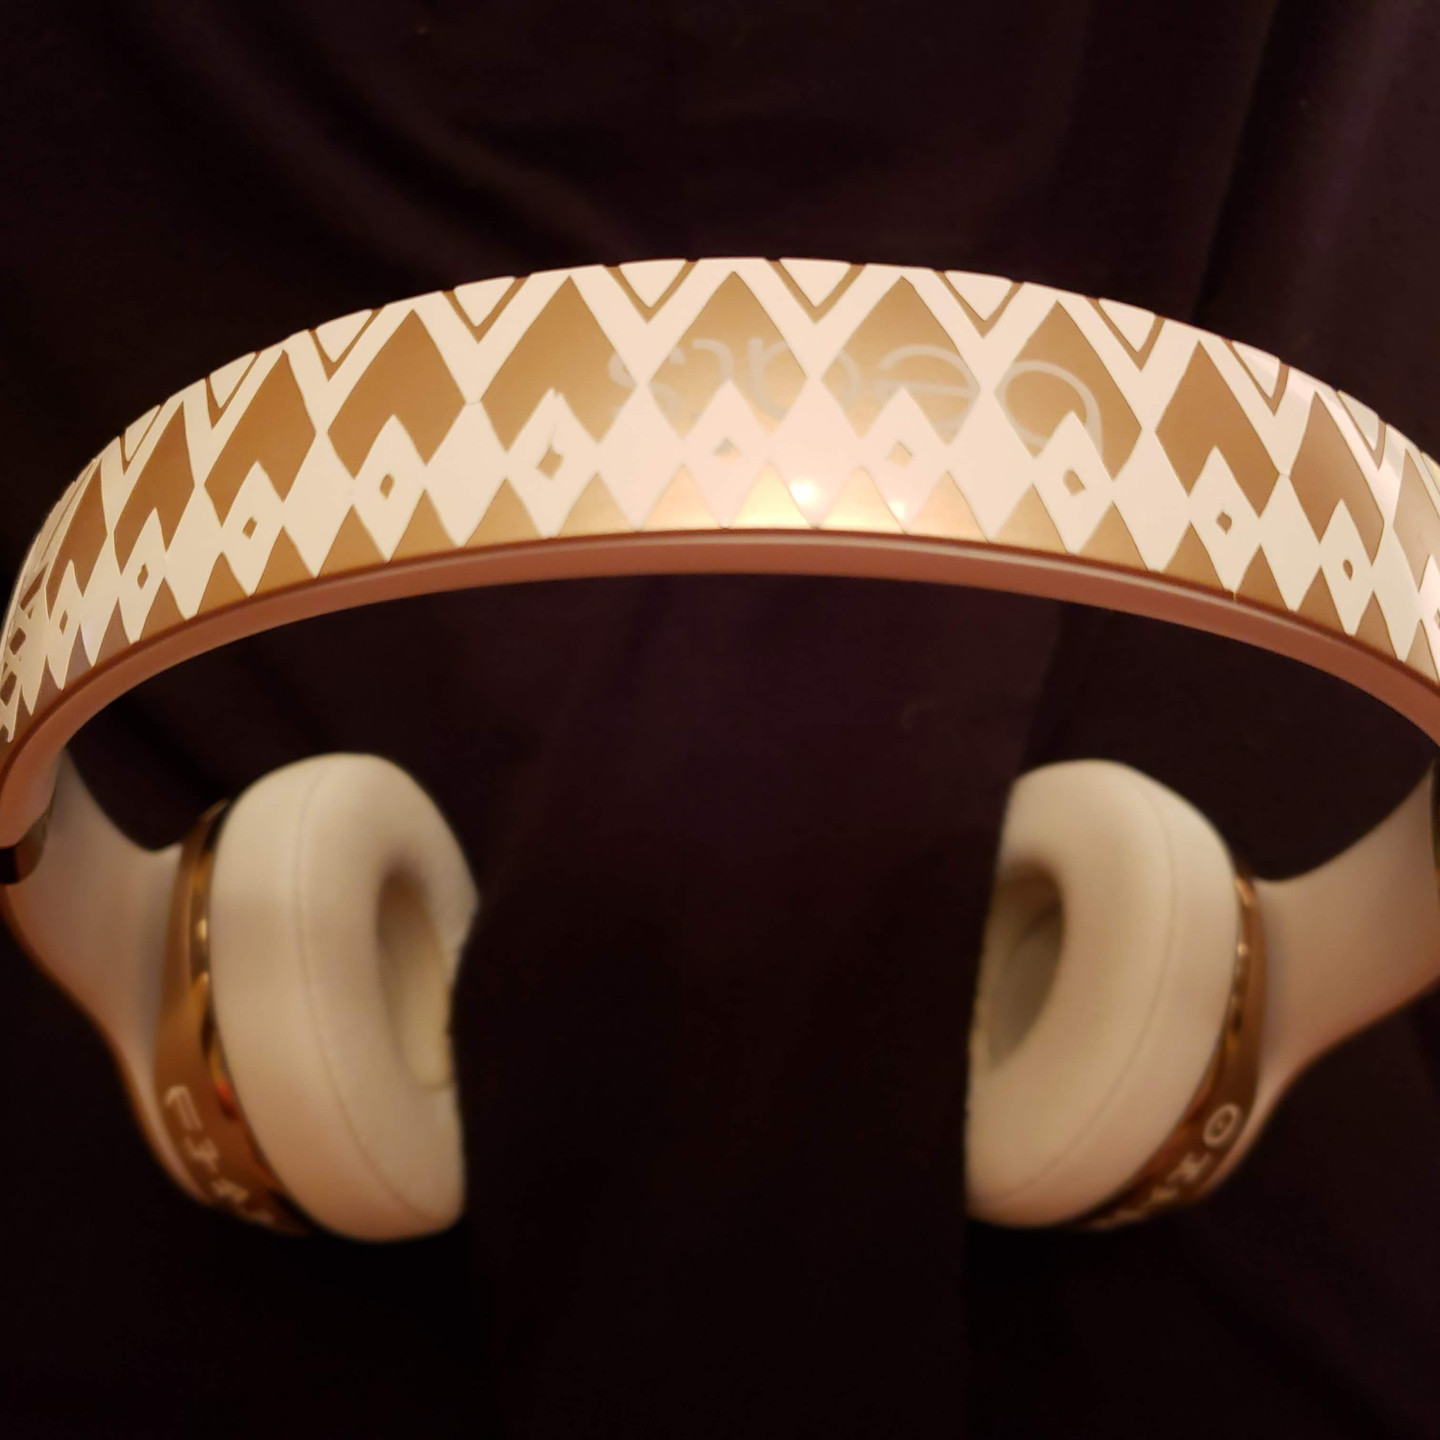 Beats by Dre Solo3, vinyl, Wakanda, African, Headphone, Cricut, Shuri, Dora Milaje, Gold, Black Panther, White, Music, vibranium, Marvel Cinematic Universe, Comics, MCU, Cricut Design Space